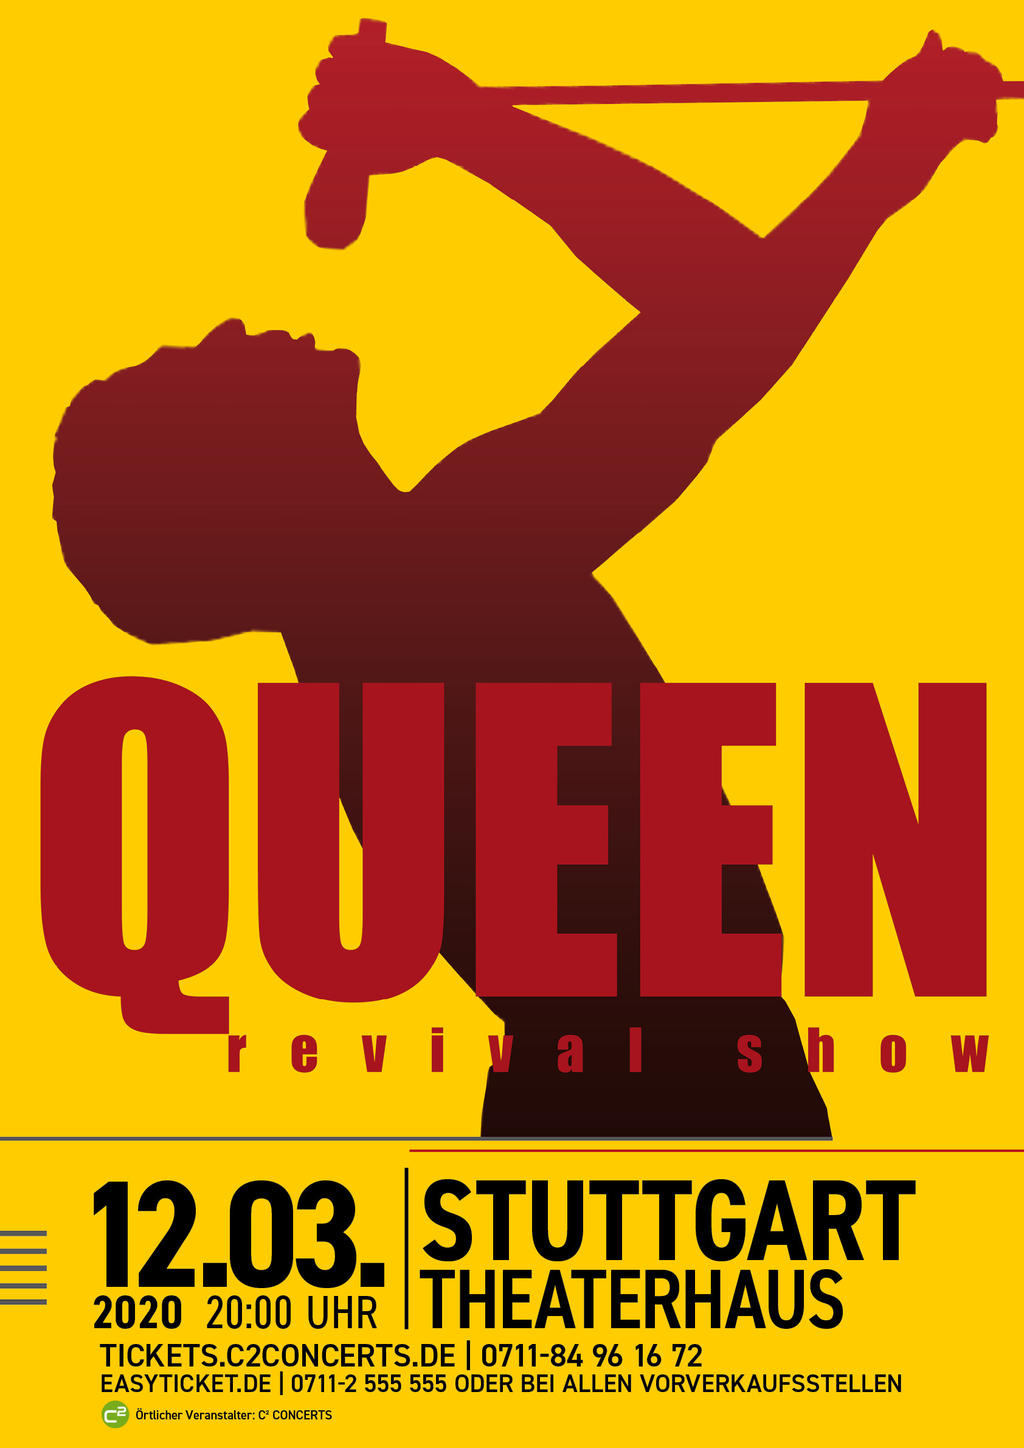 QUEEN REVIVAL SHOW Tickets